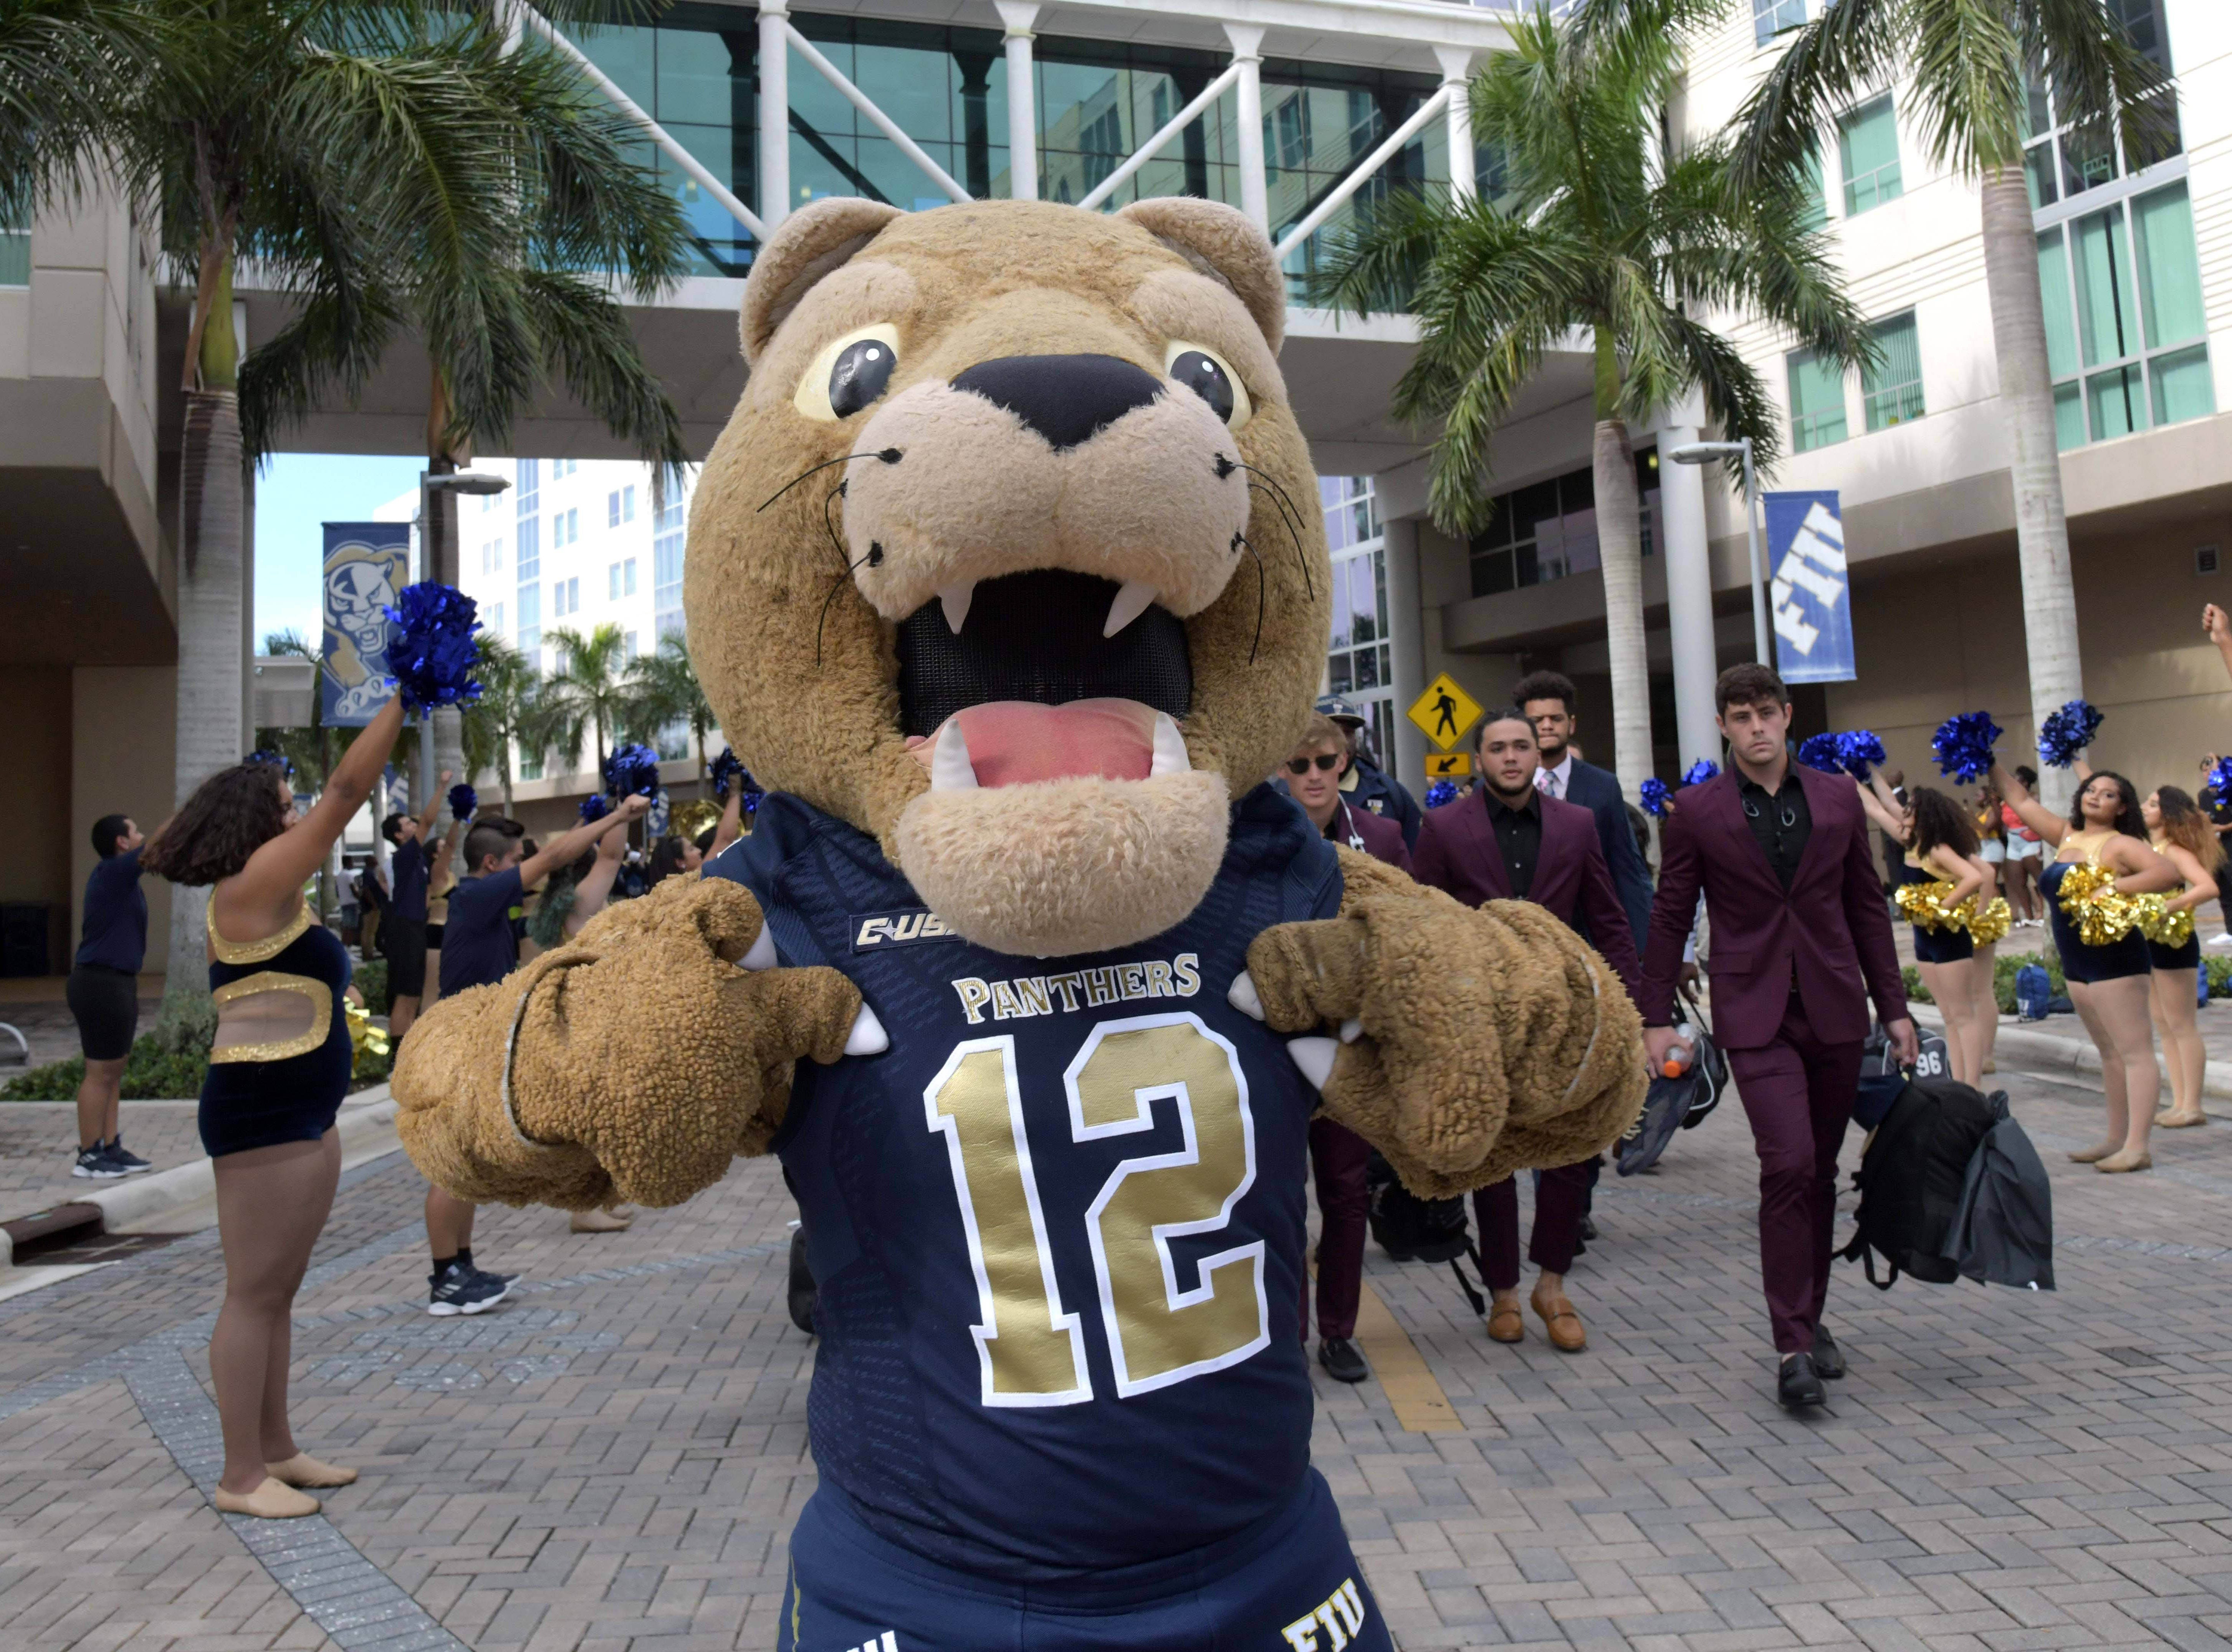 Week 1: FIU mascot Roary the Panther poses before the game against the Indiana Hoosiers at Riccardo Silva Stadium.